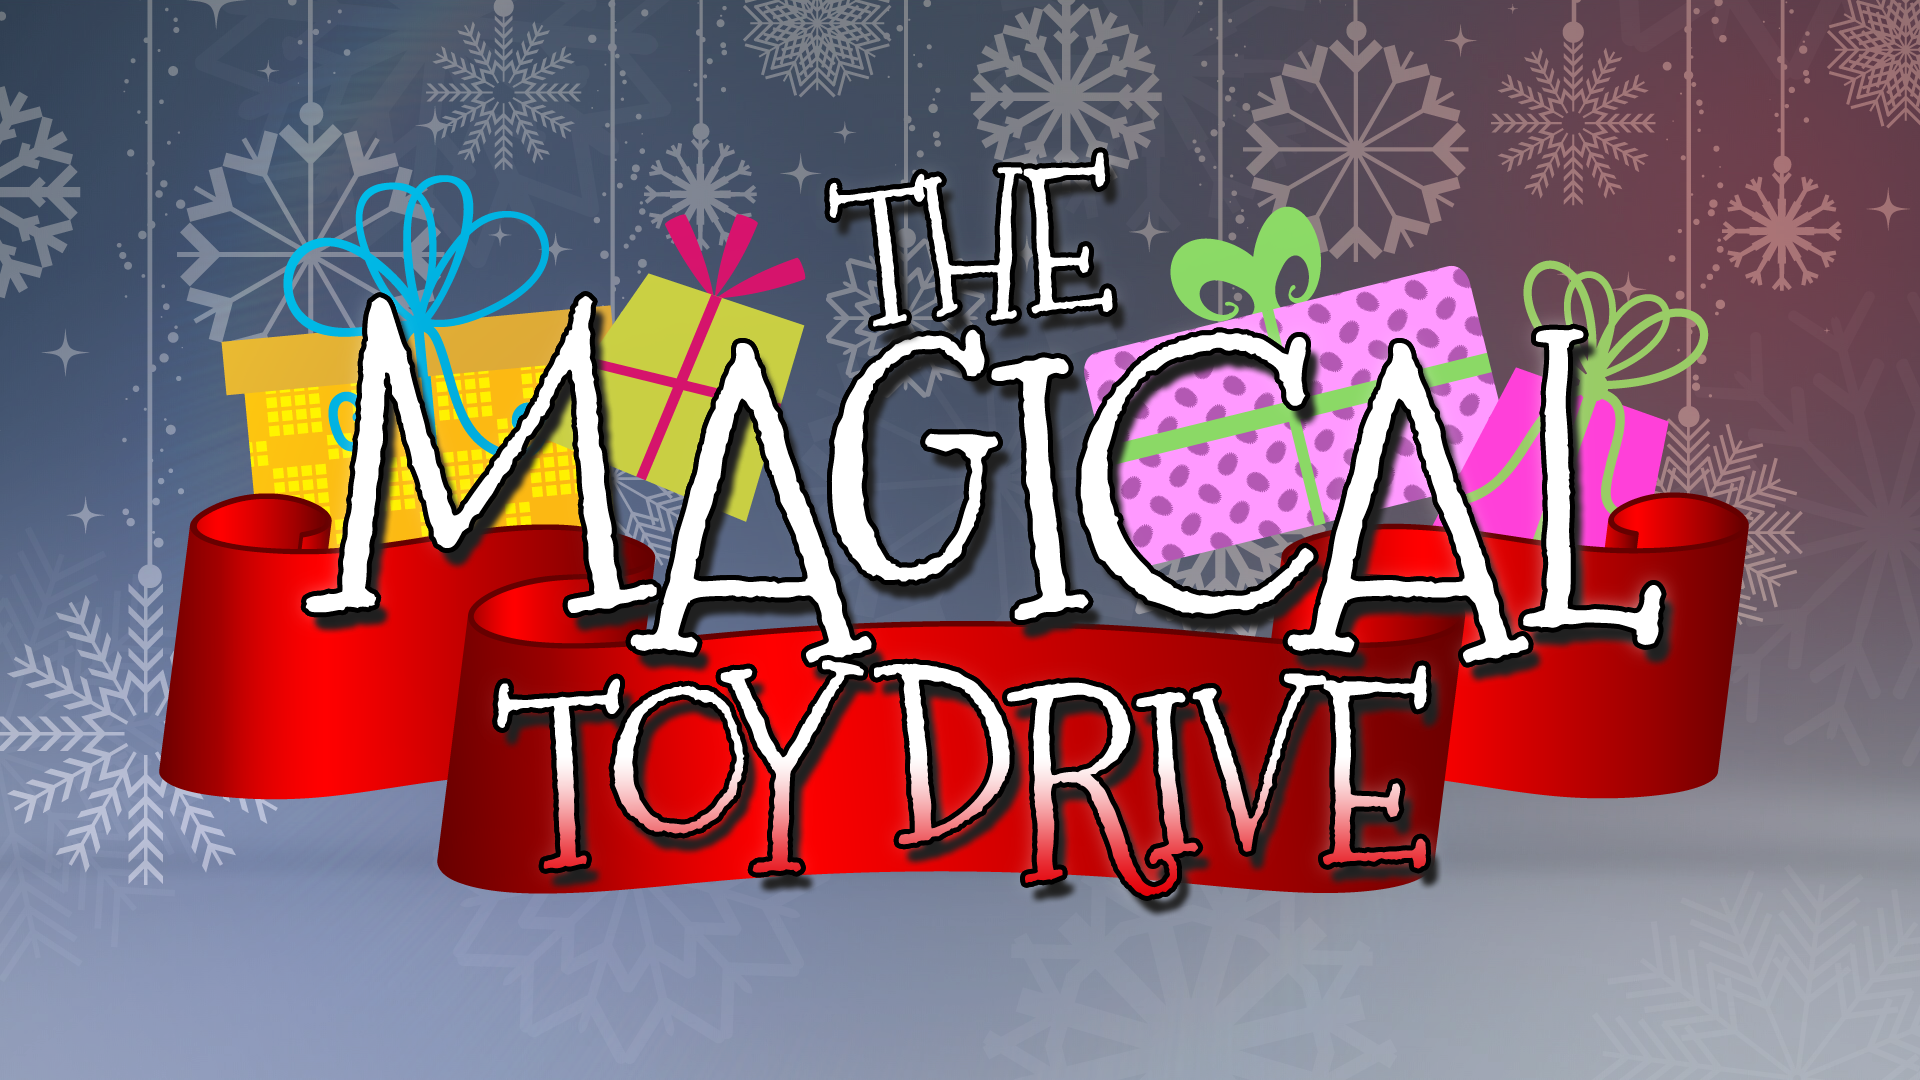 Toy Drive Logo : Donate to the magical toy drive wcnc